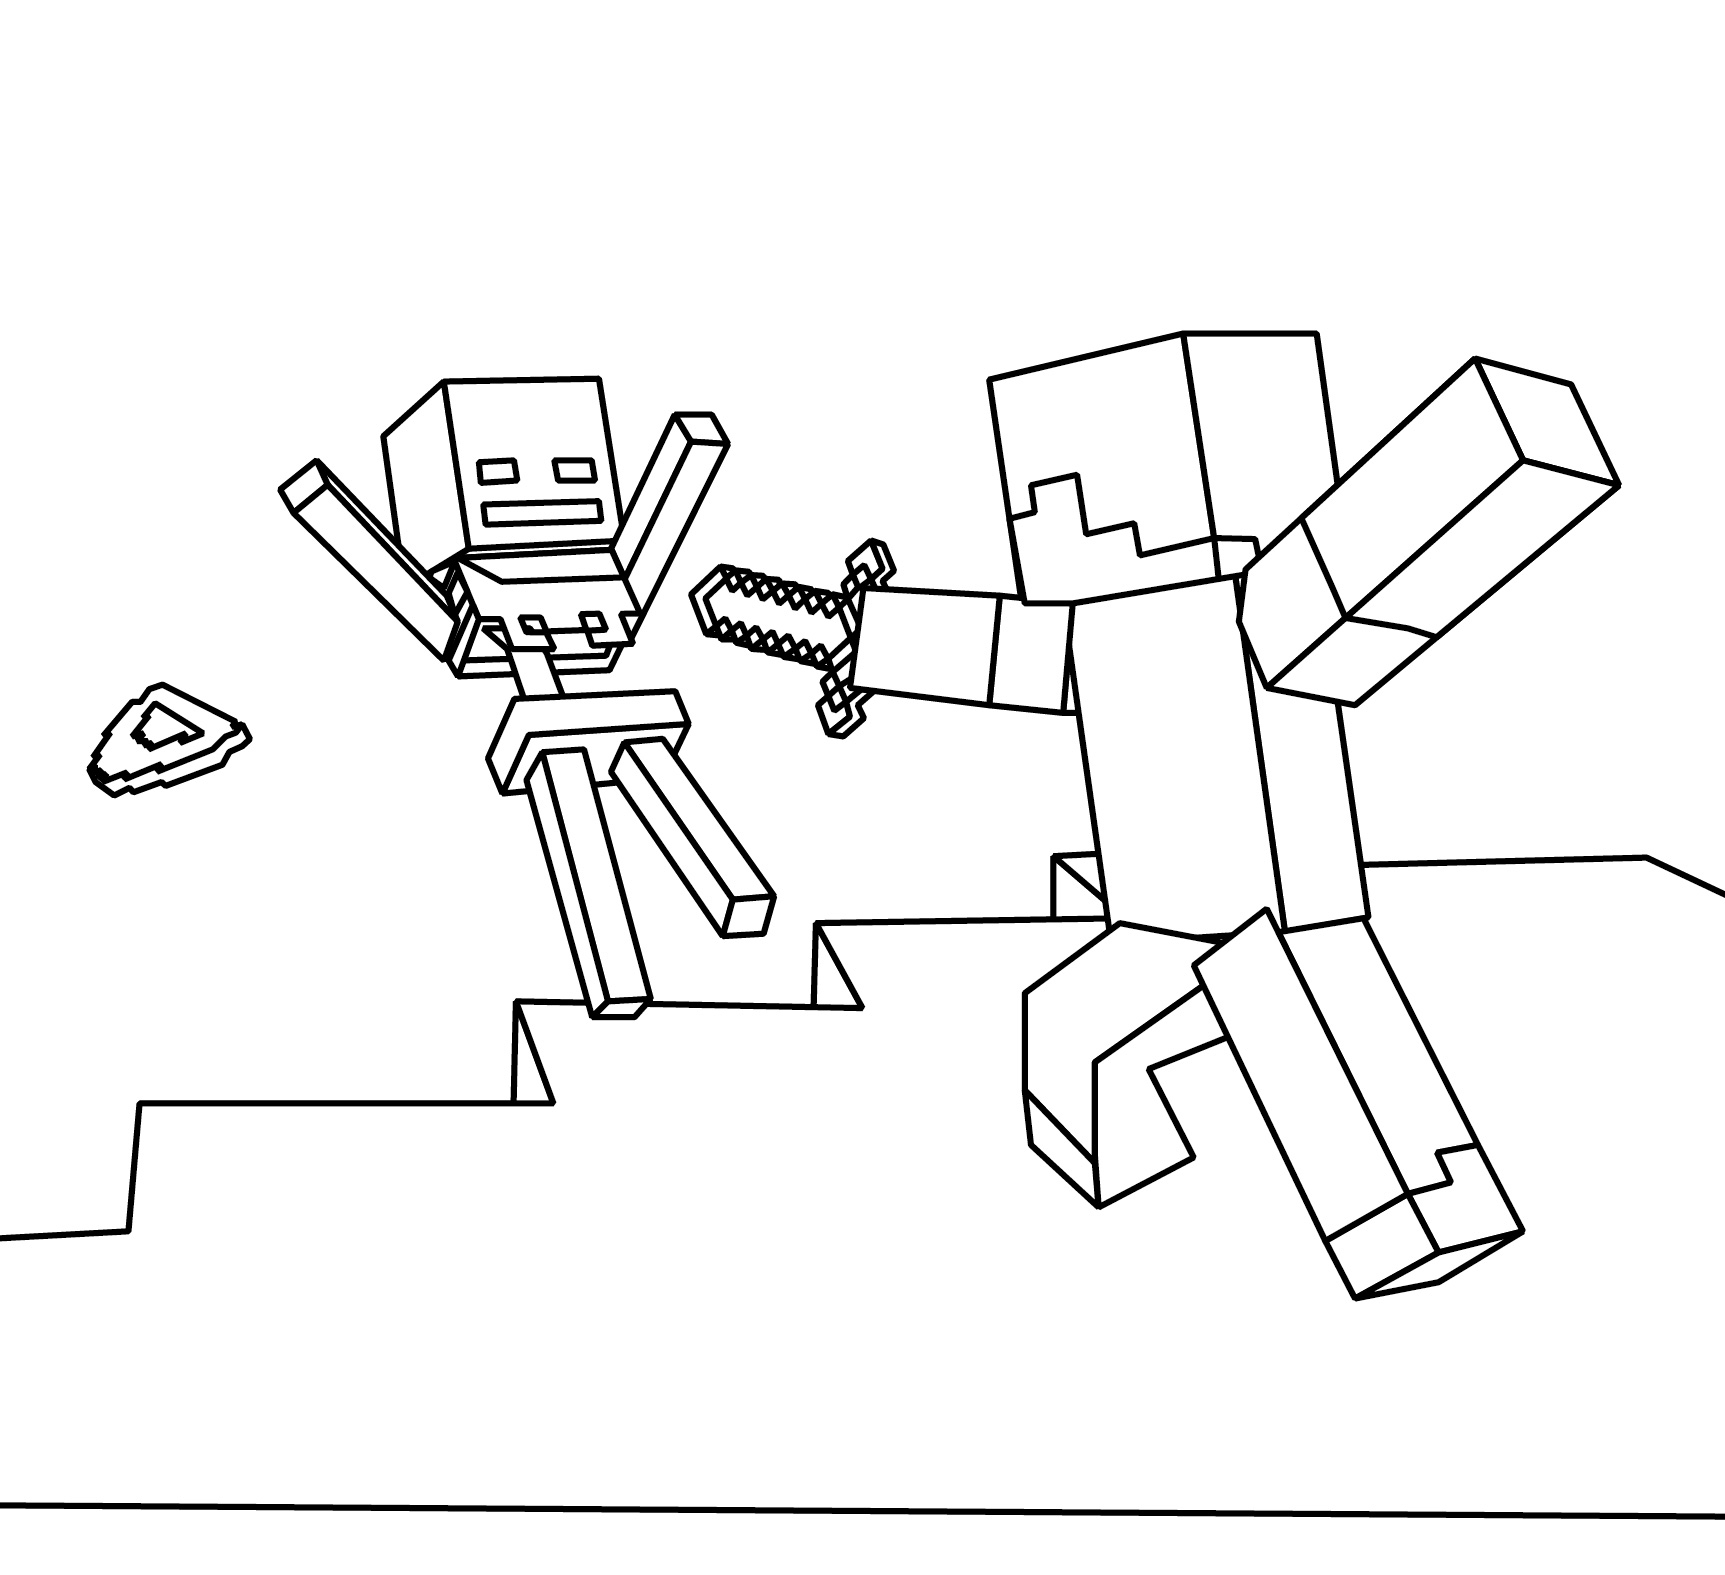 minecraft ocelot coloring pages minecraft ocelot coloring pages at getcoloringscom free ocelot pages minecraft coloring